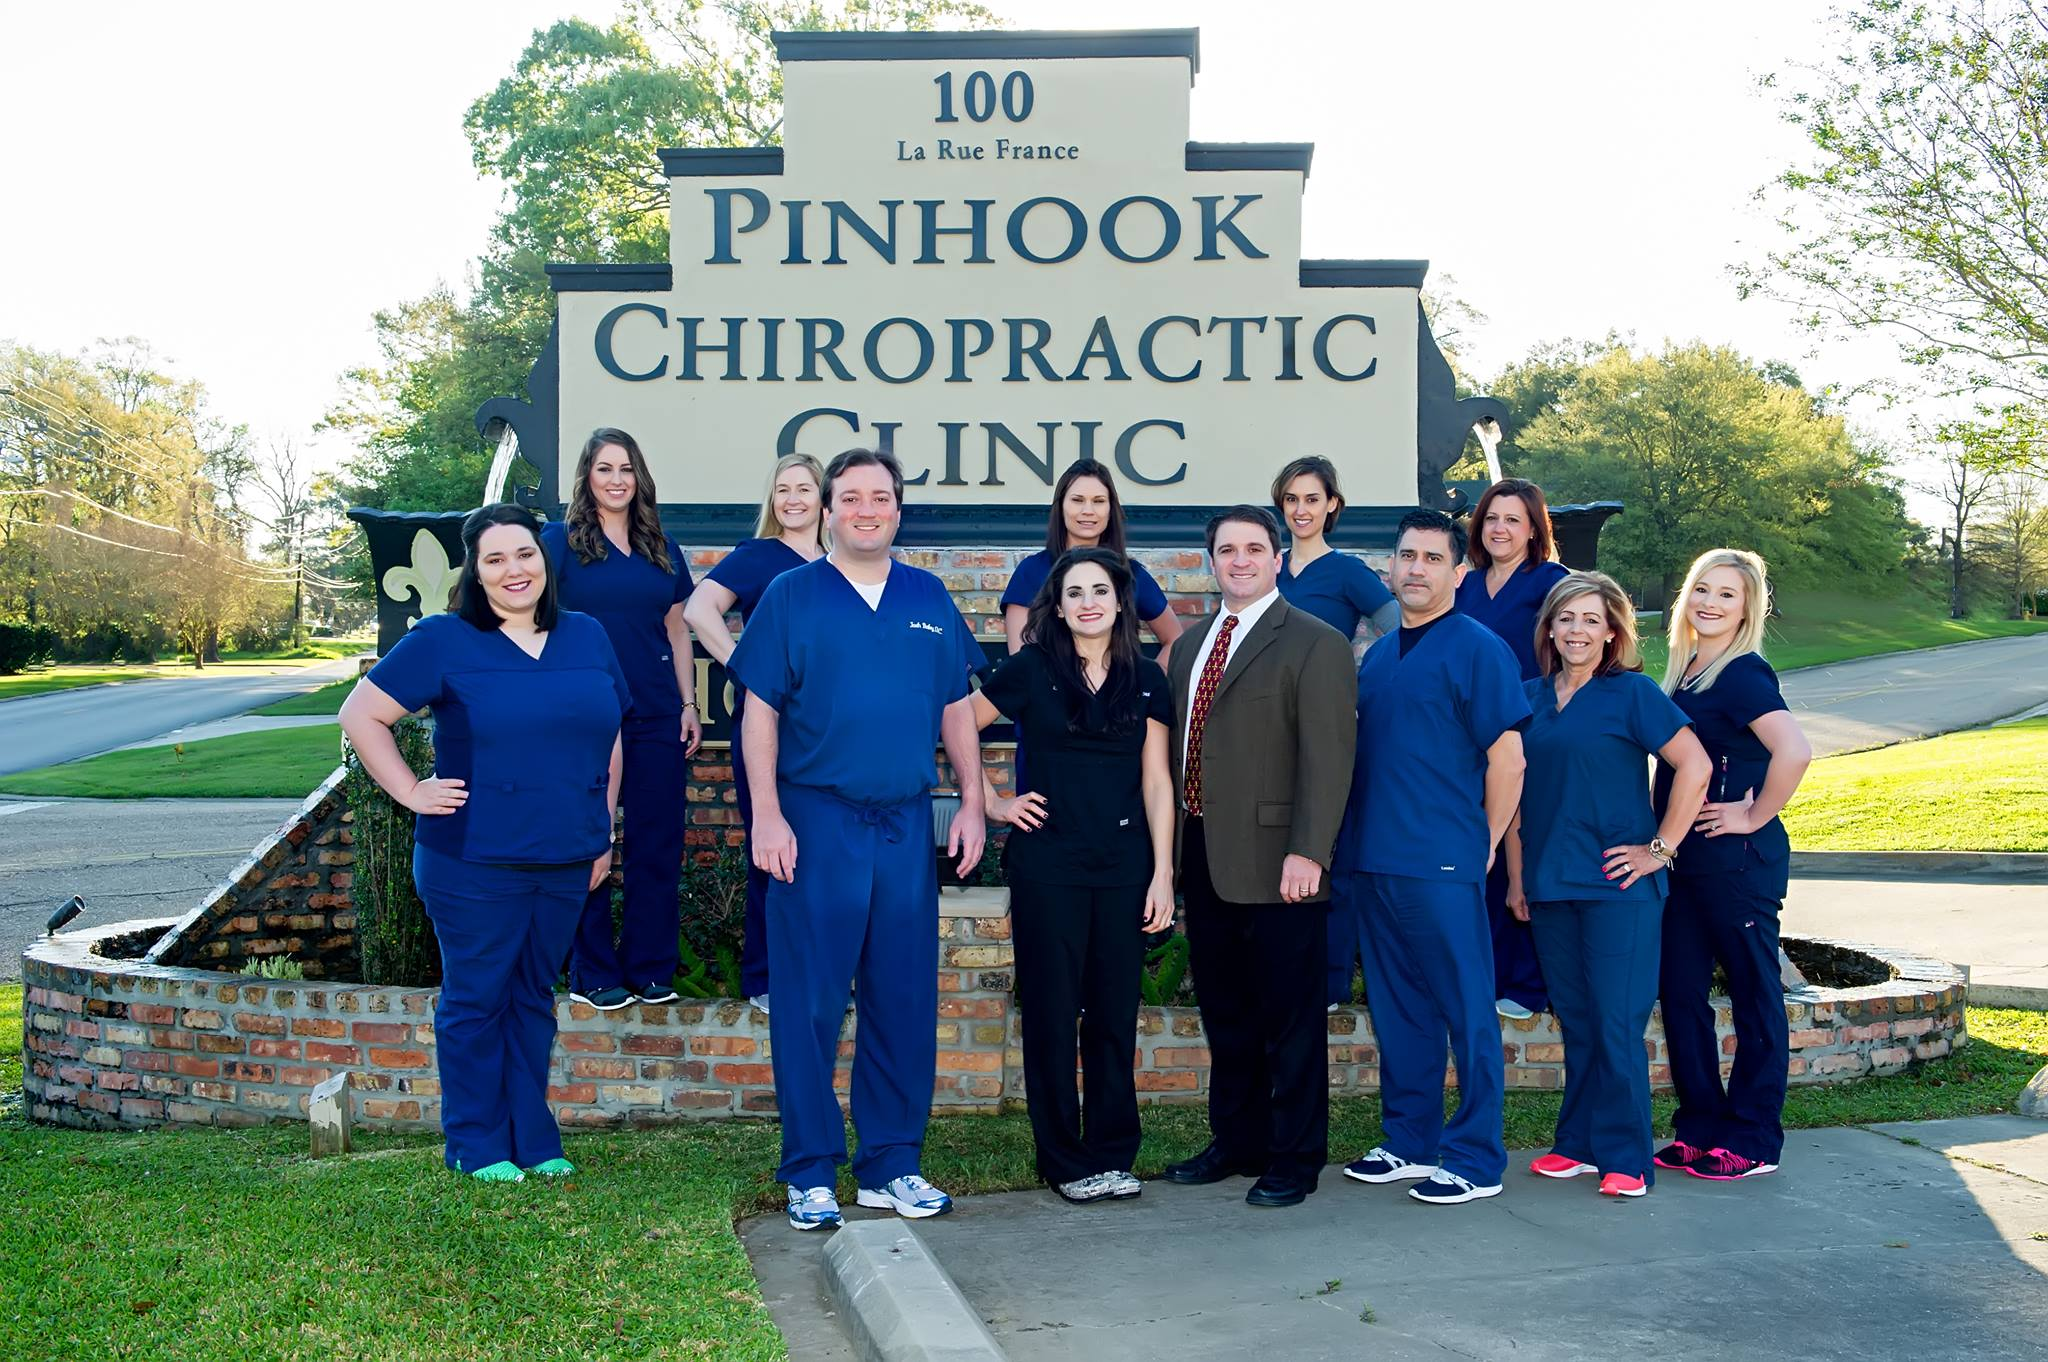 Louisiana's Top Rated Local® Chiropractors Award Winner: Pinhook Chiropractic Clinic